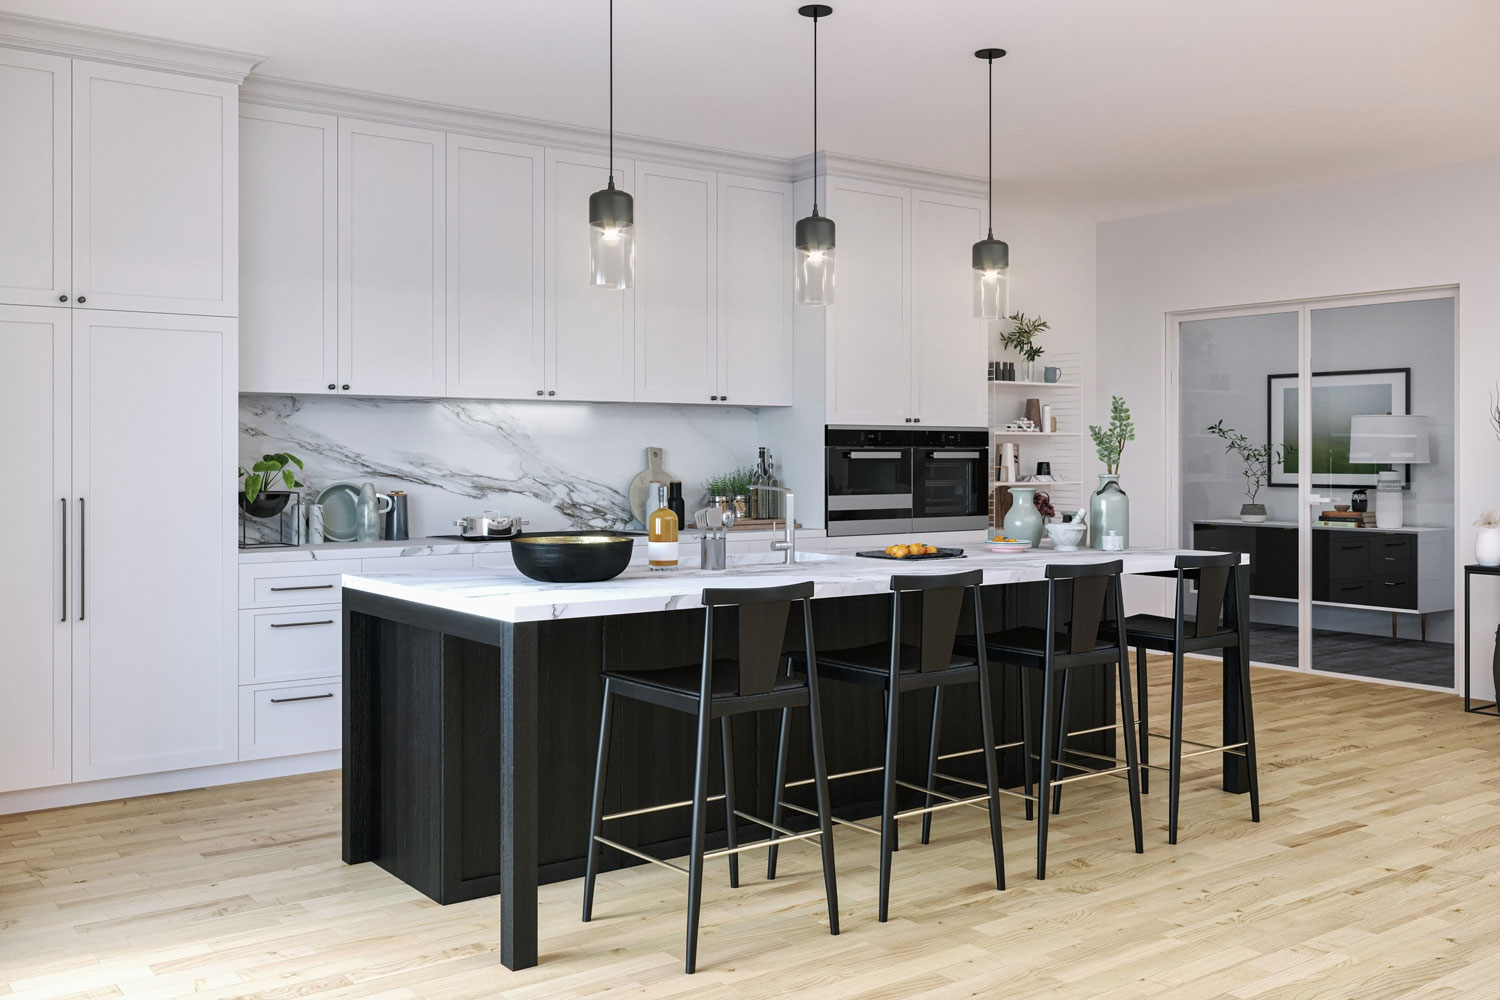 How Tall Is A Kitchen Island? [Dimensions Explored]